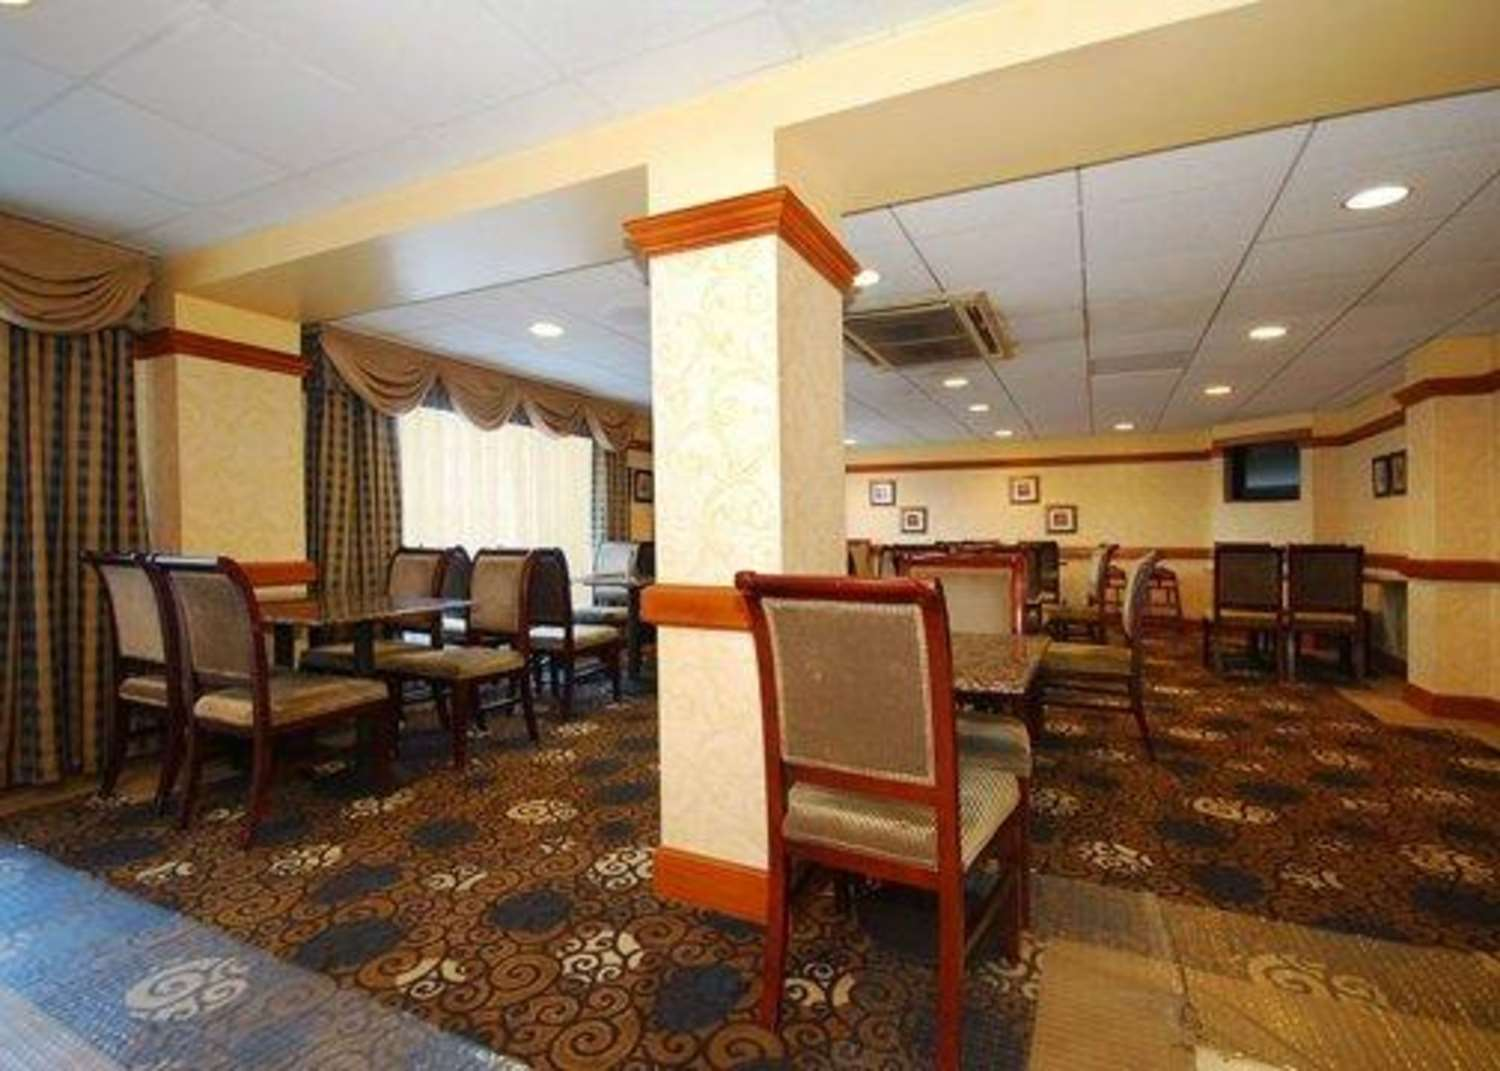 Restaurant - Quality Inn & Suites Bensalem